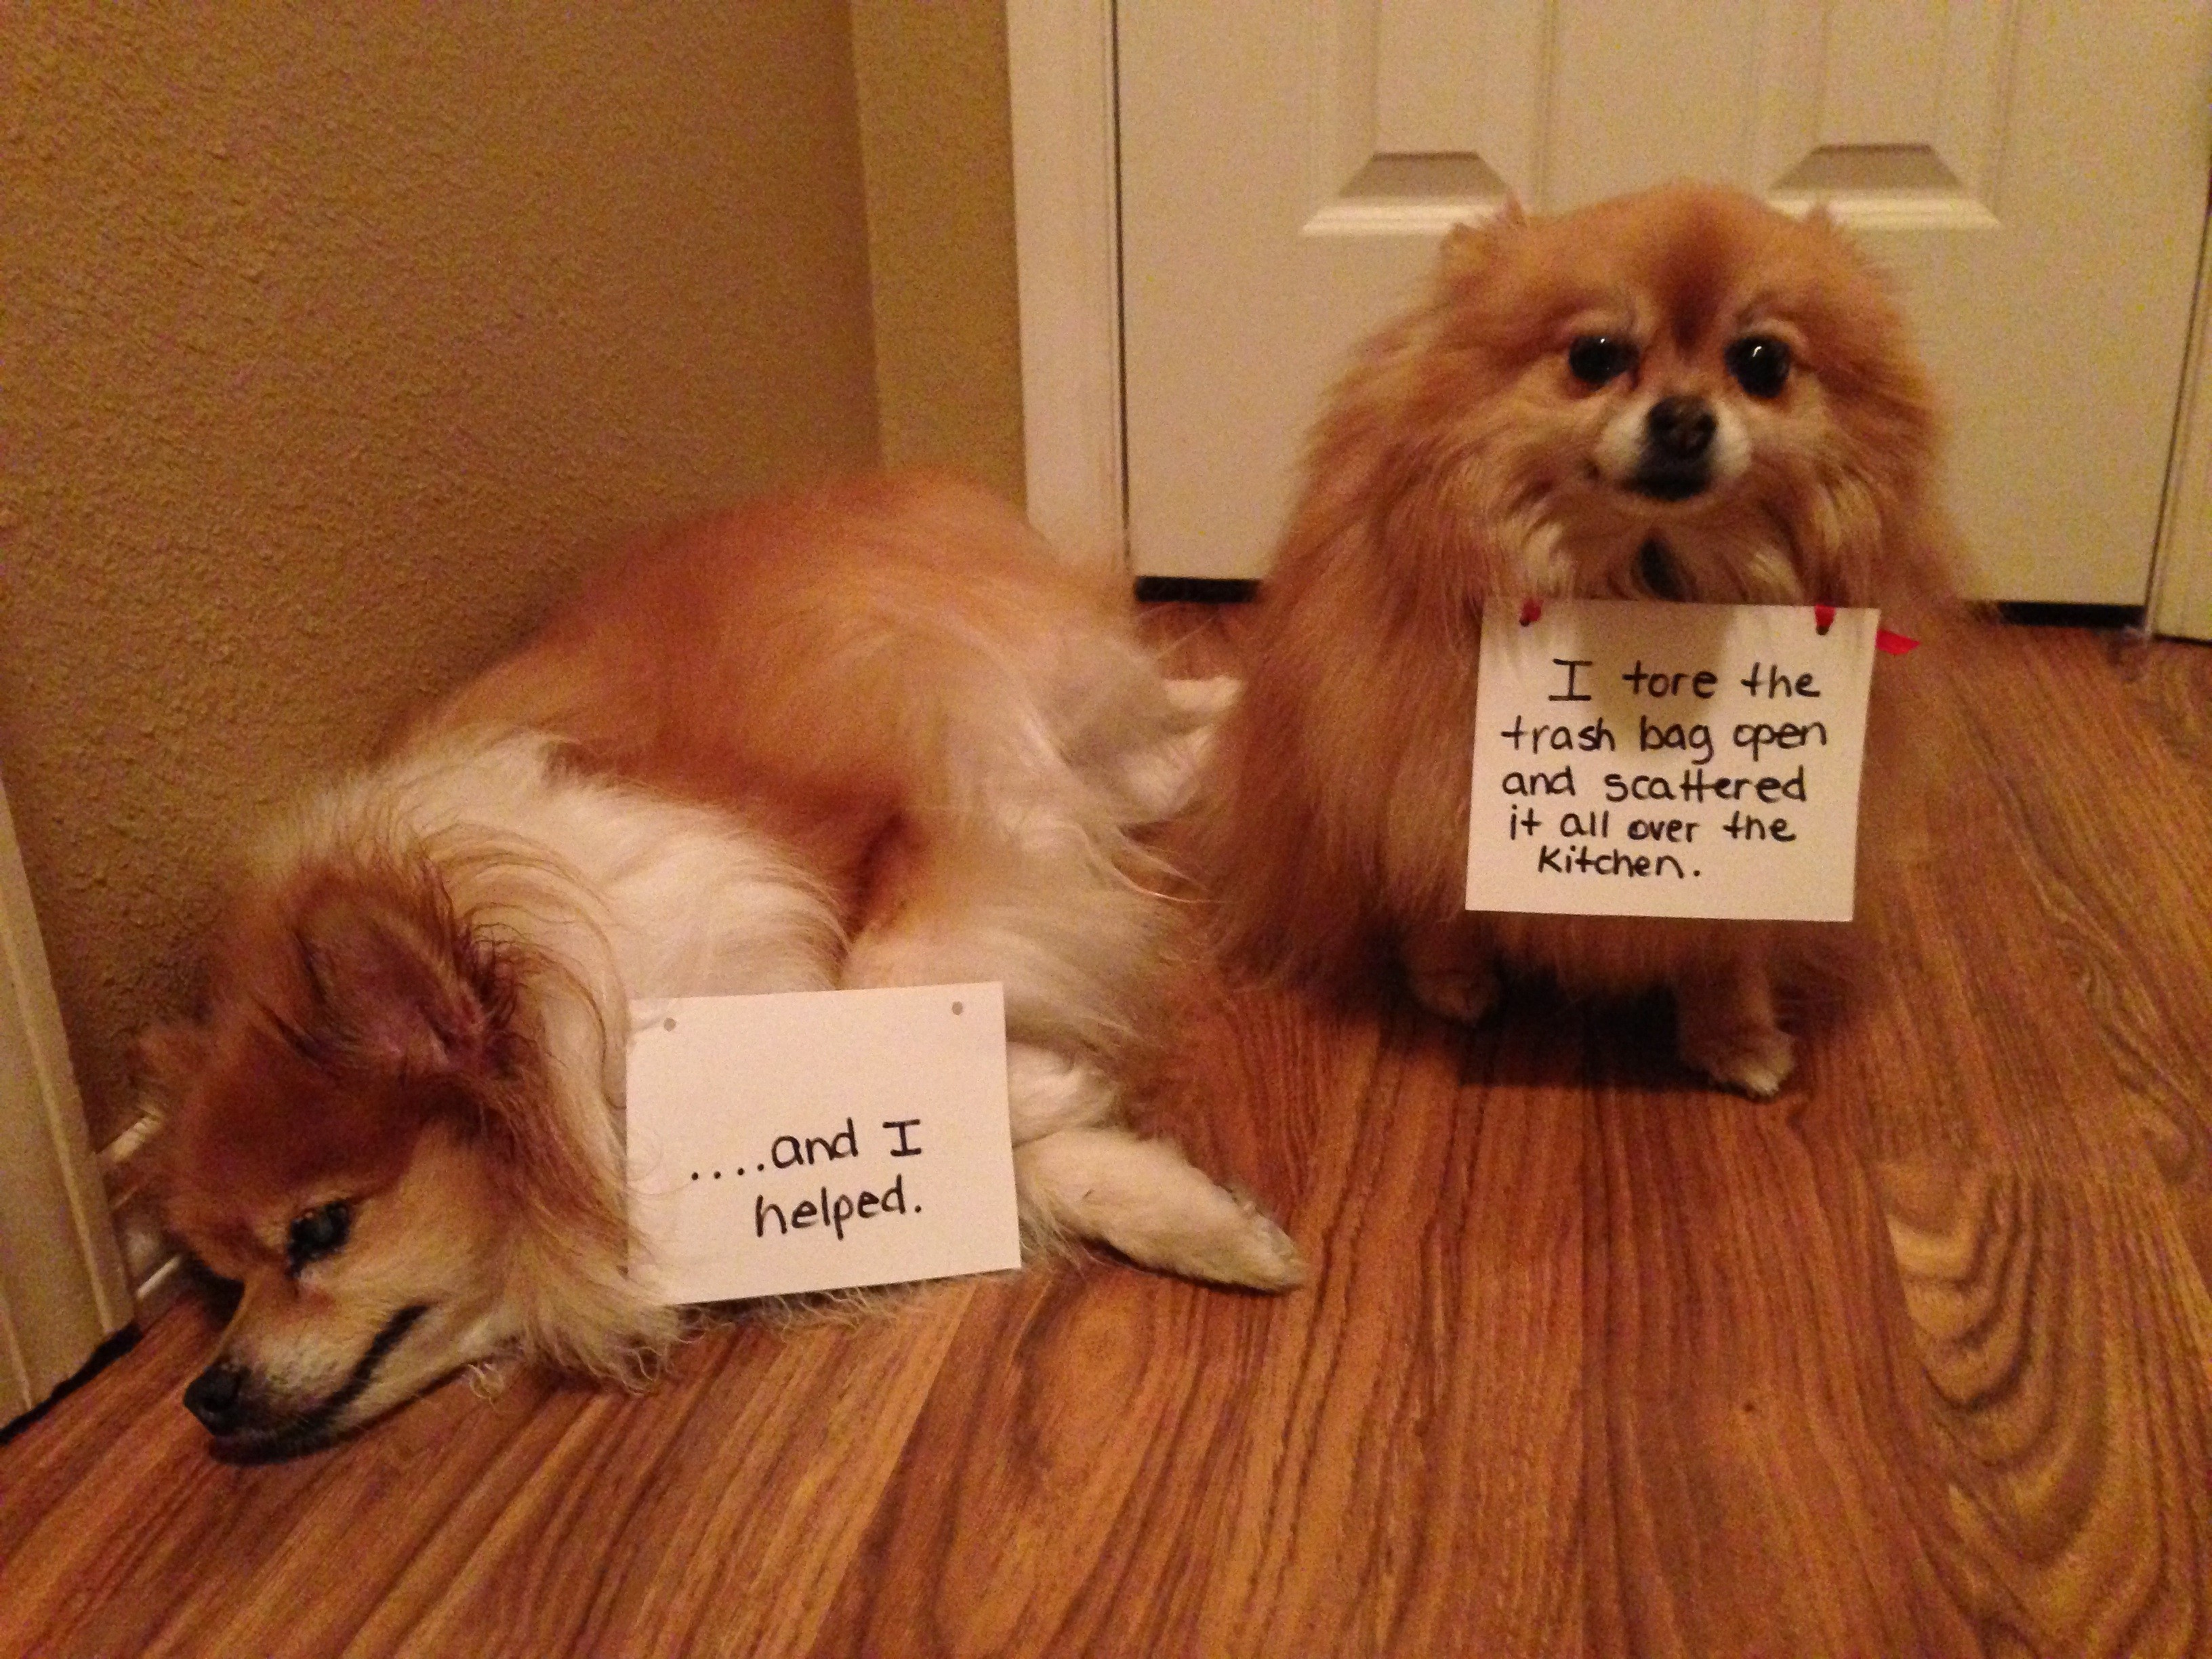 Friendly reminder that yesterday was garbage day - Dogshaming